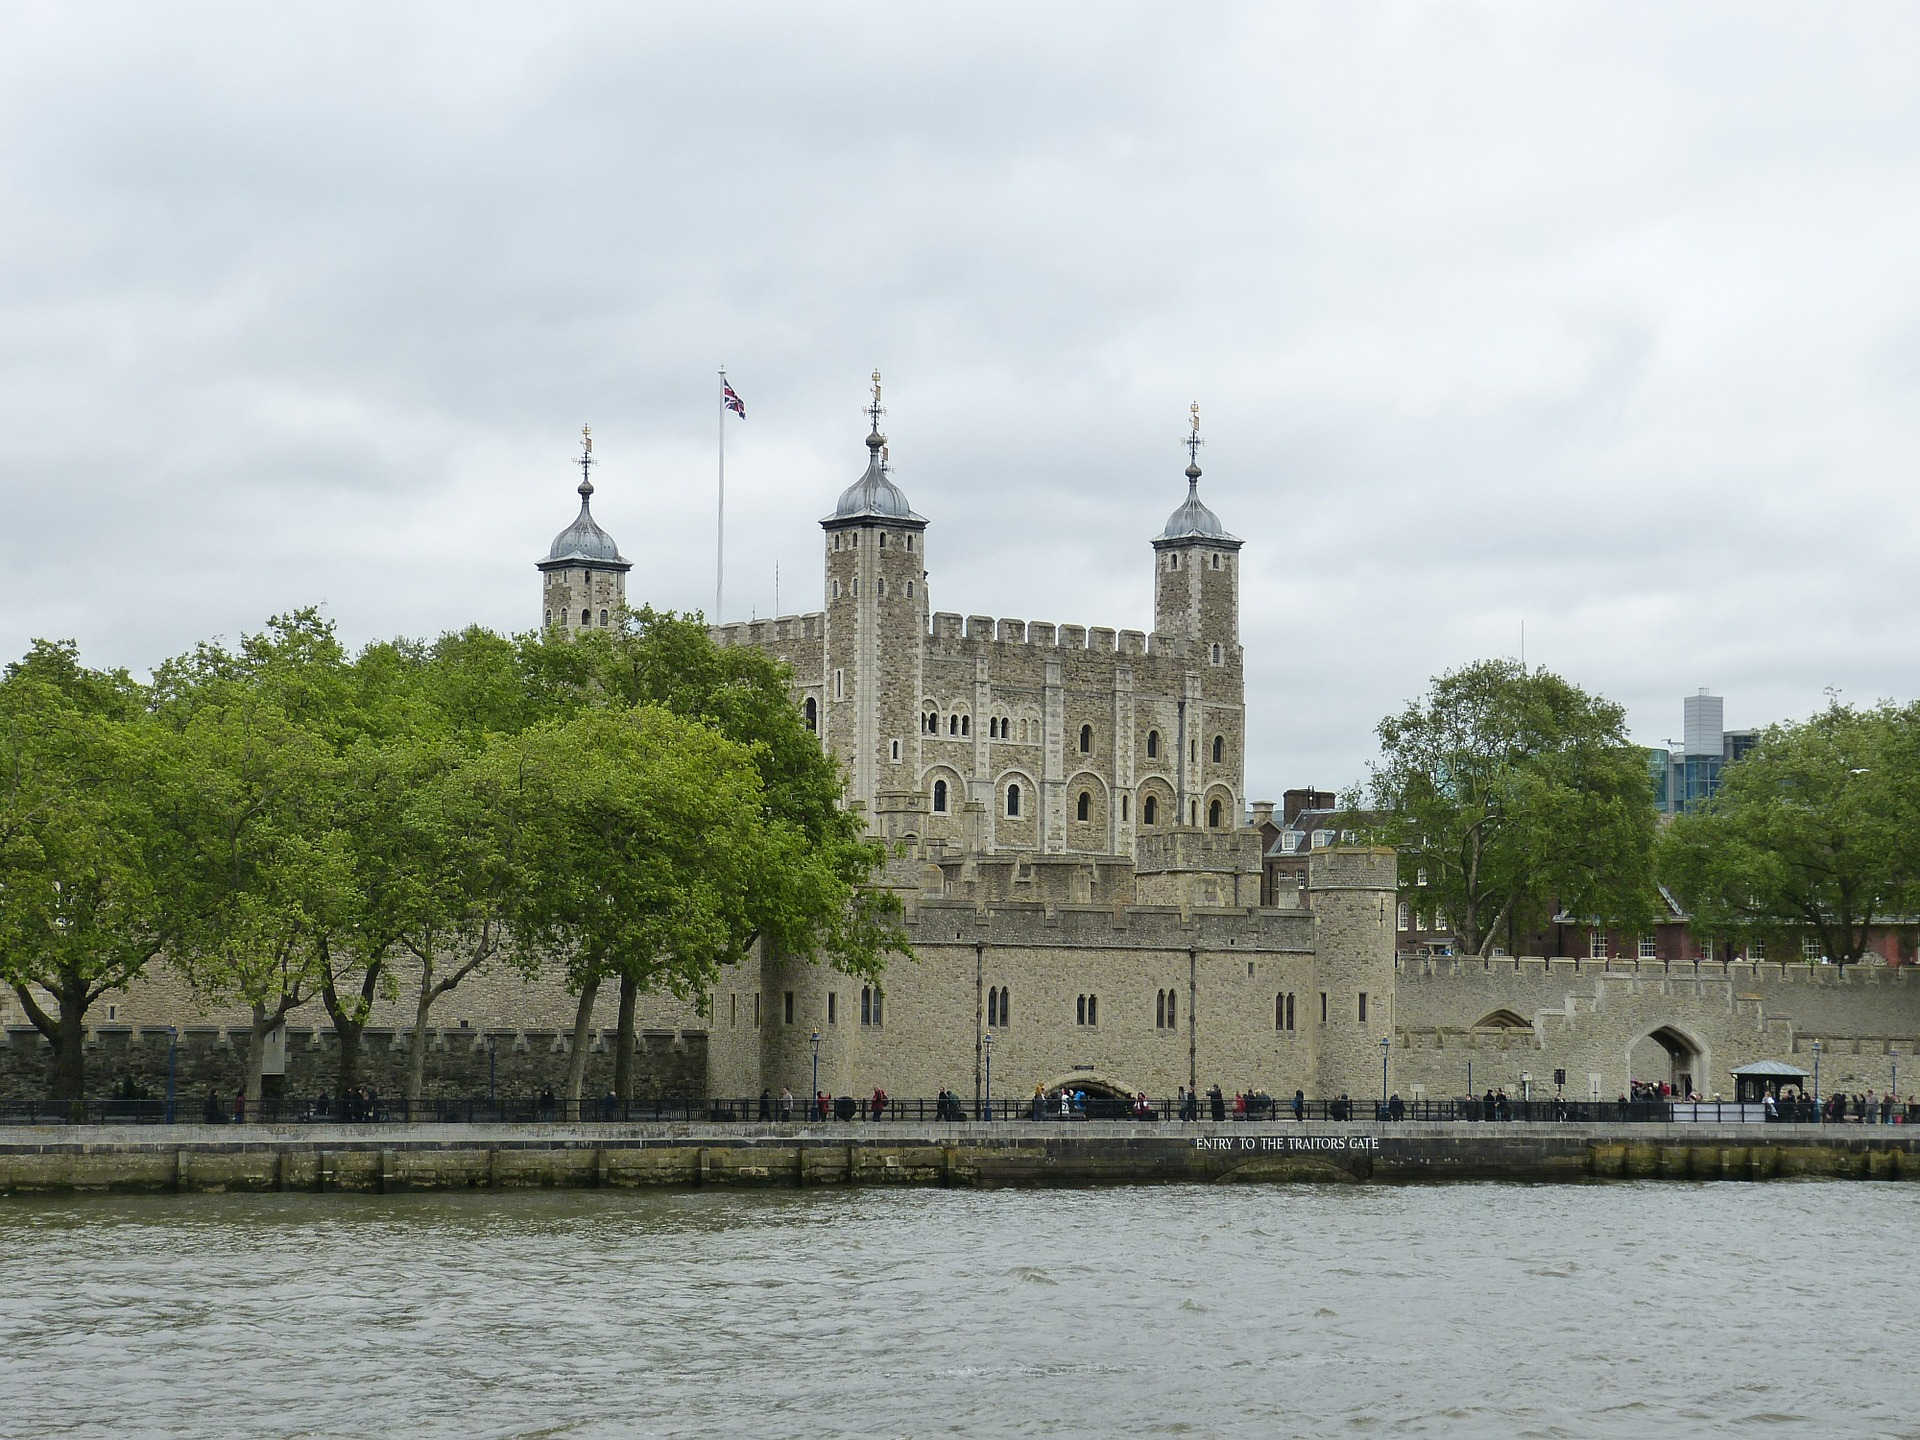 Tower of London in London, England